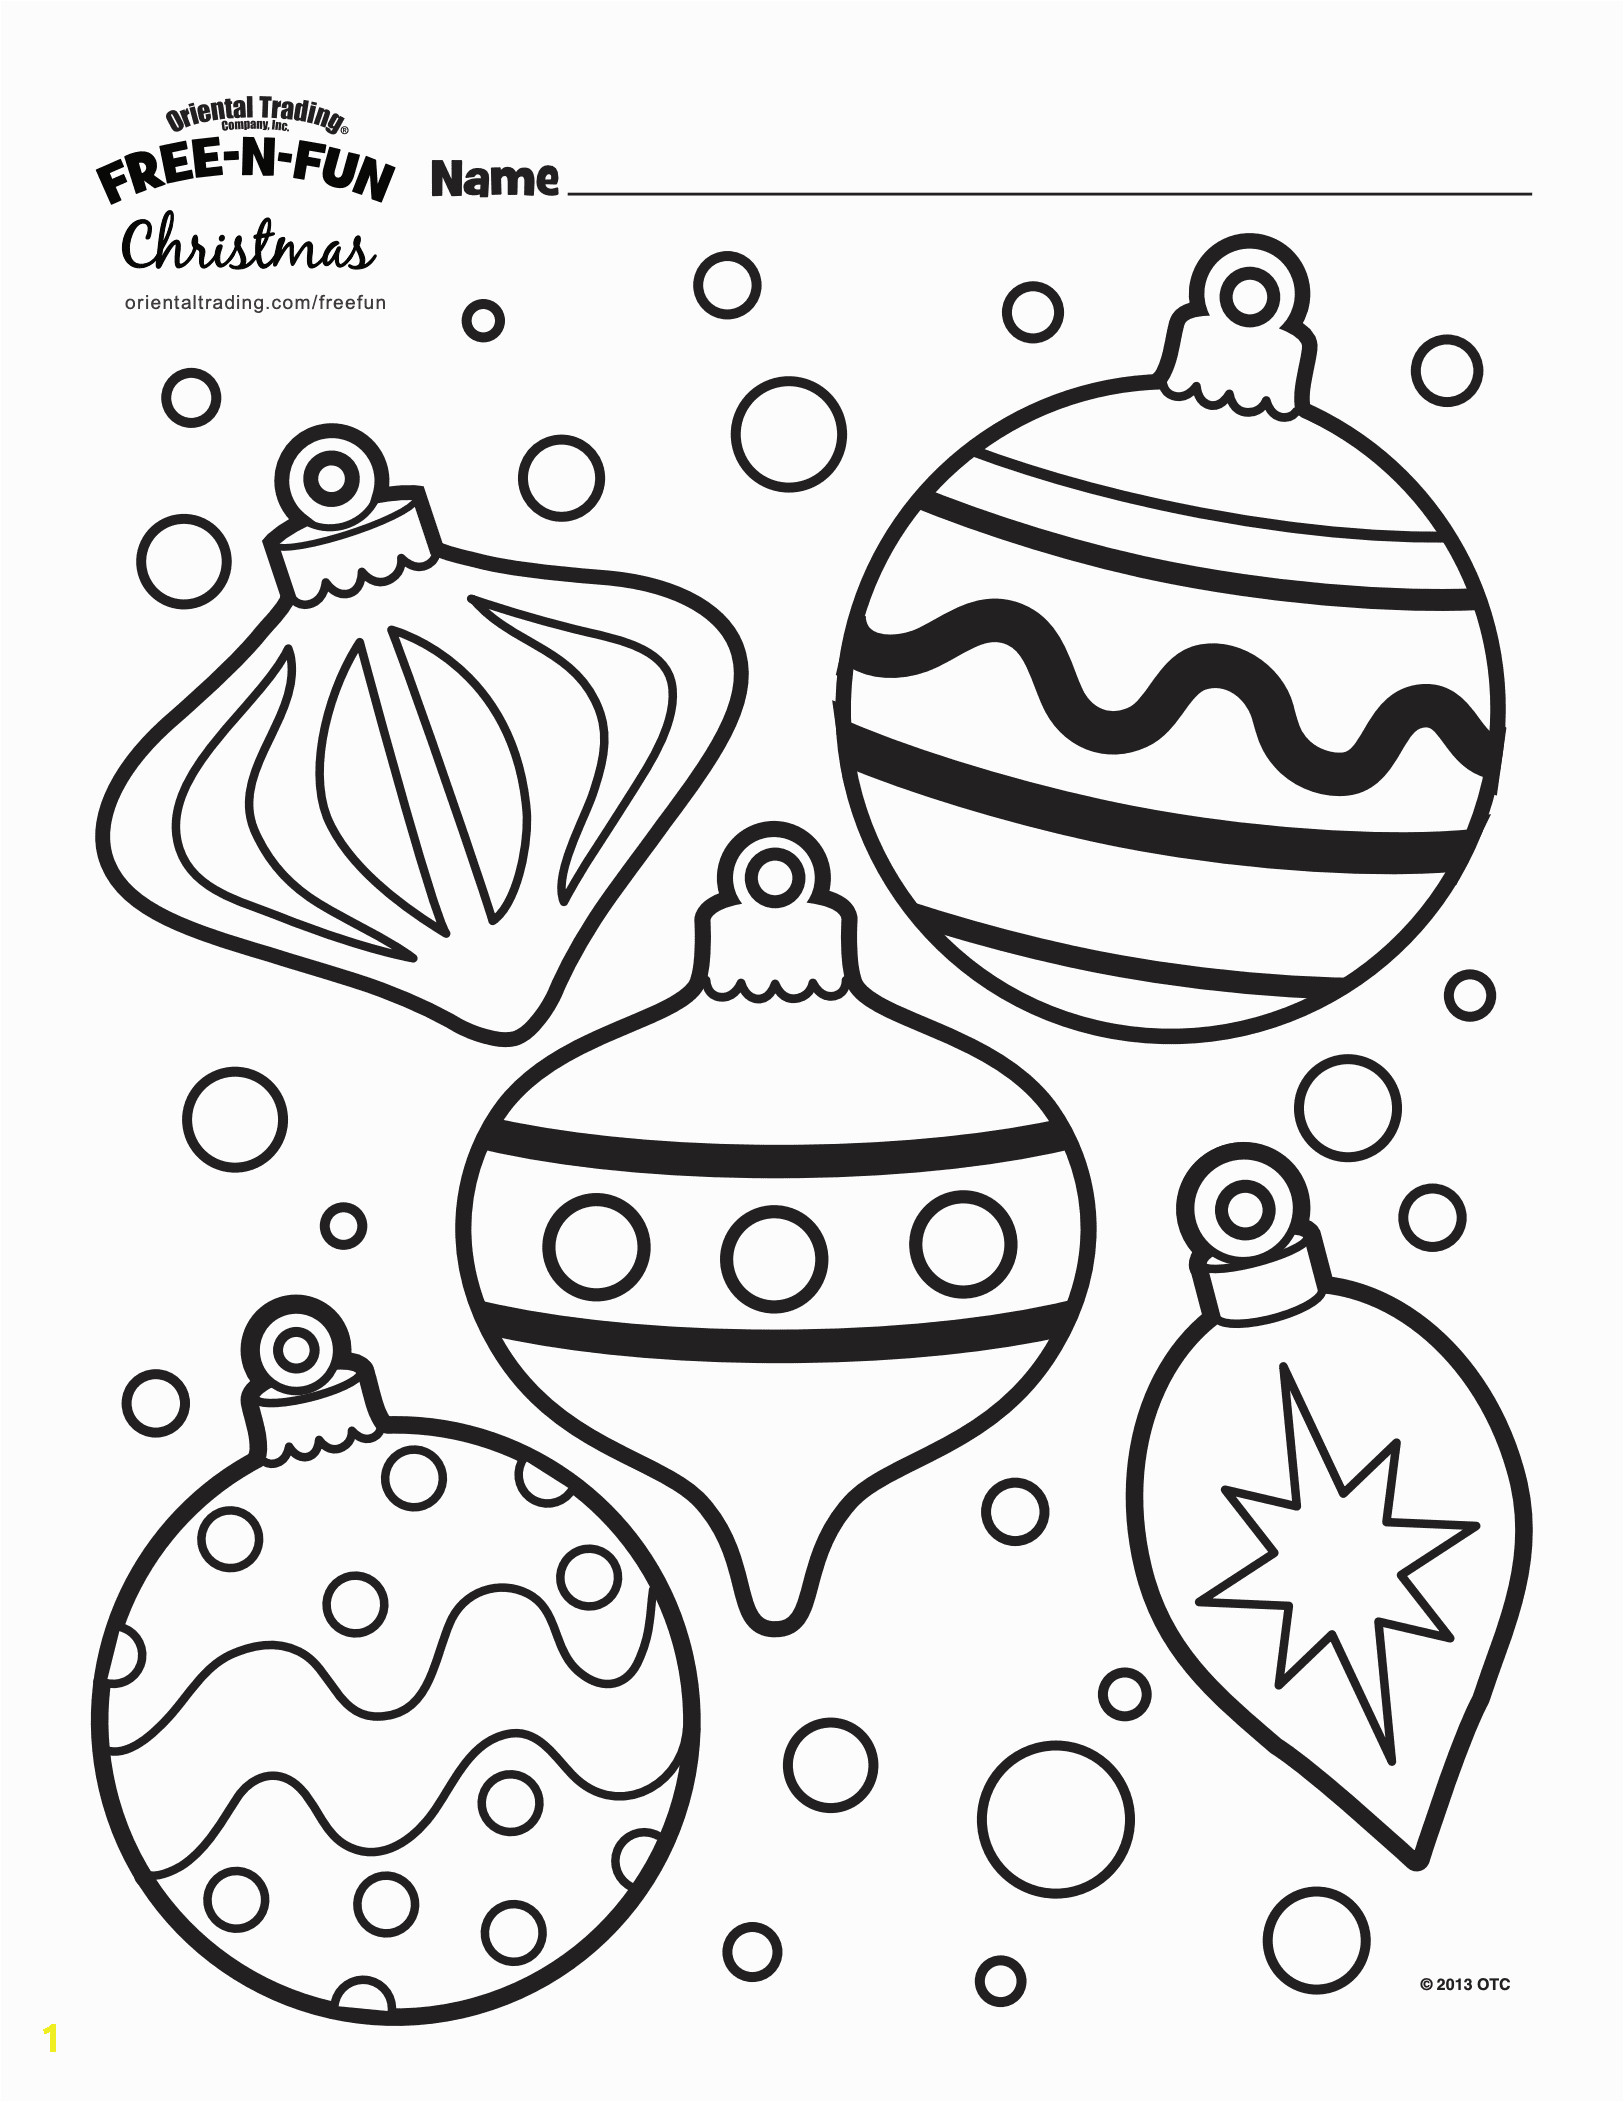 Coloring Pages Christmas ornaments Printable Printable Christmas Colouring Pages